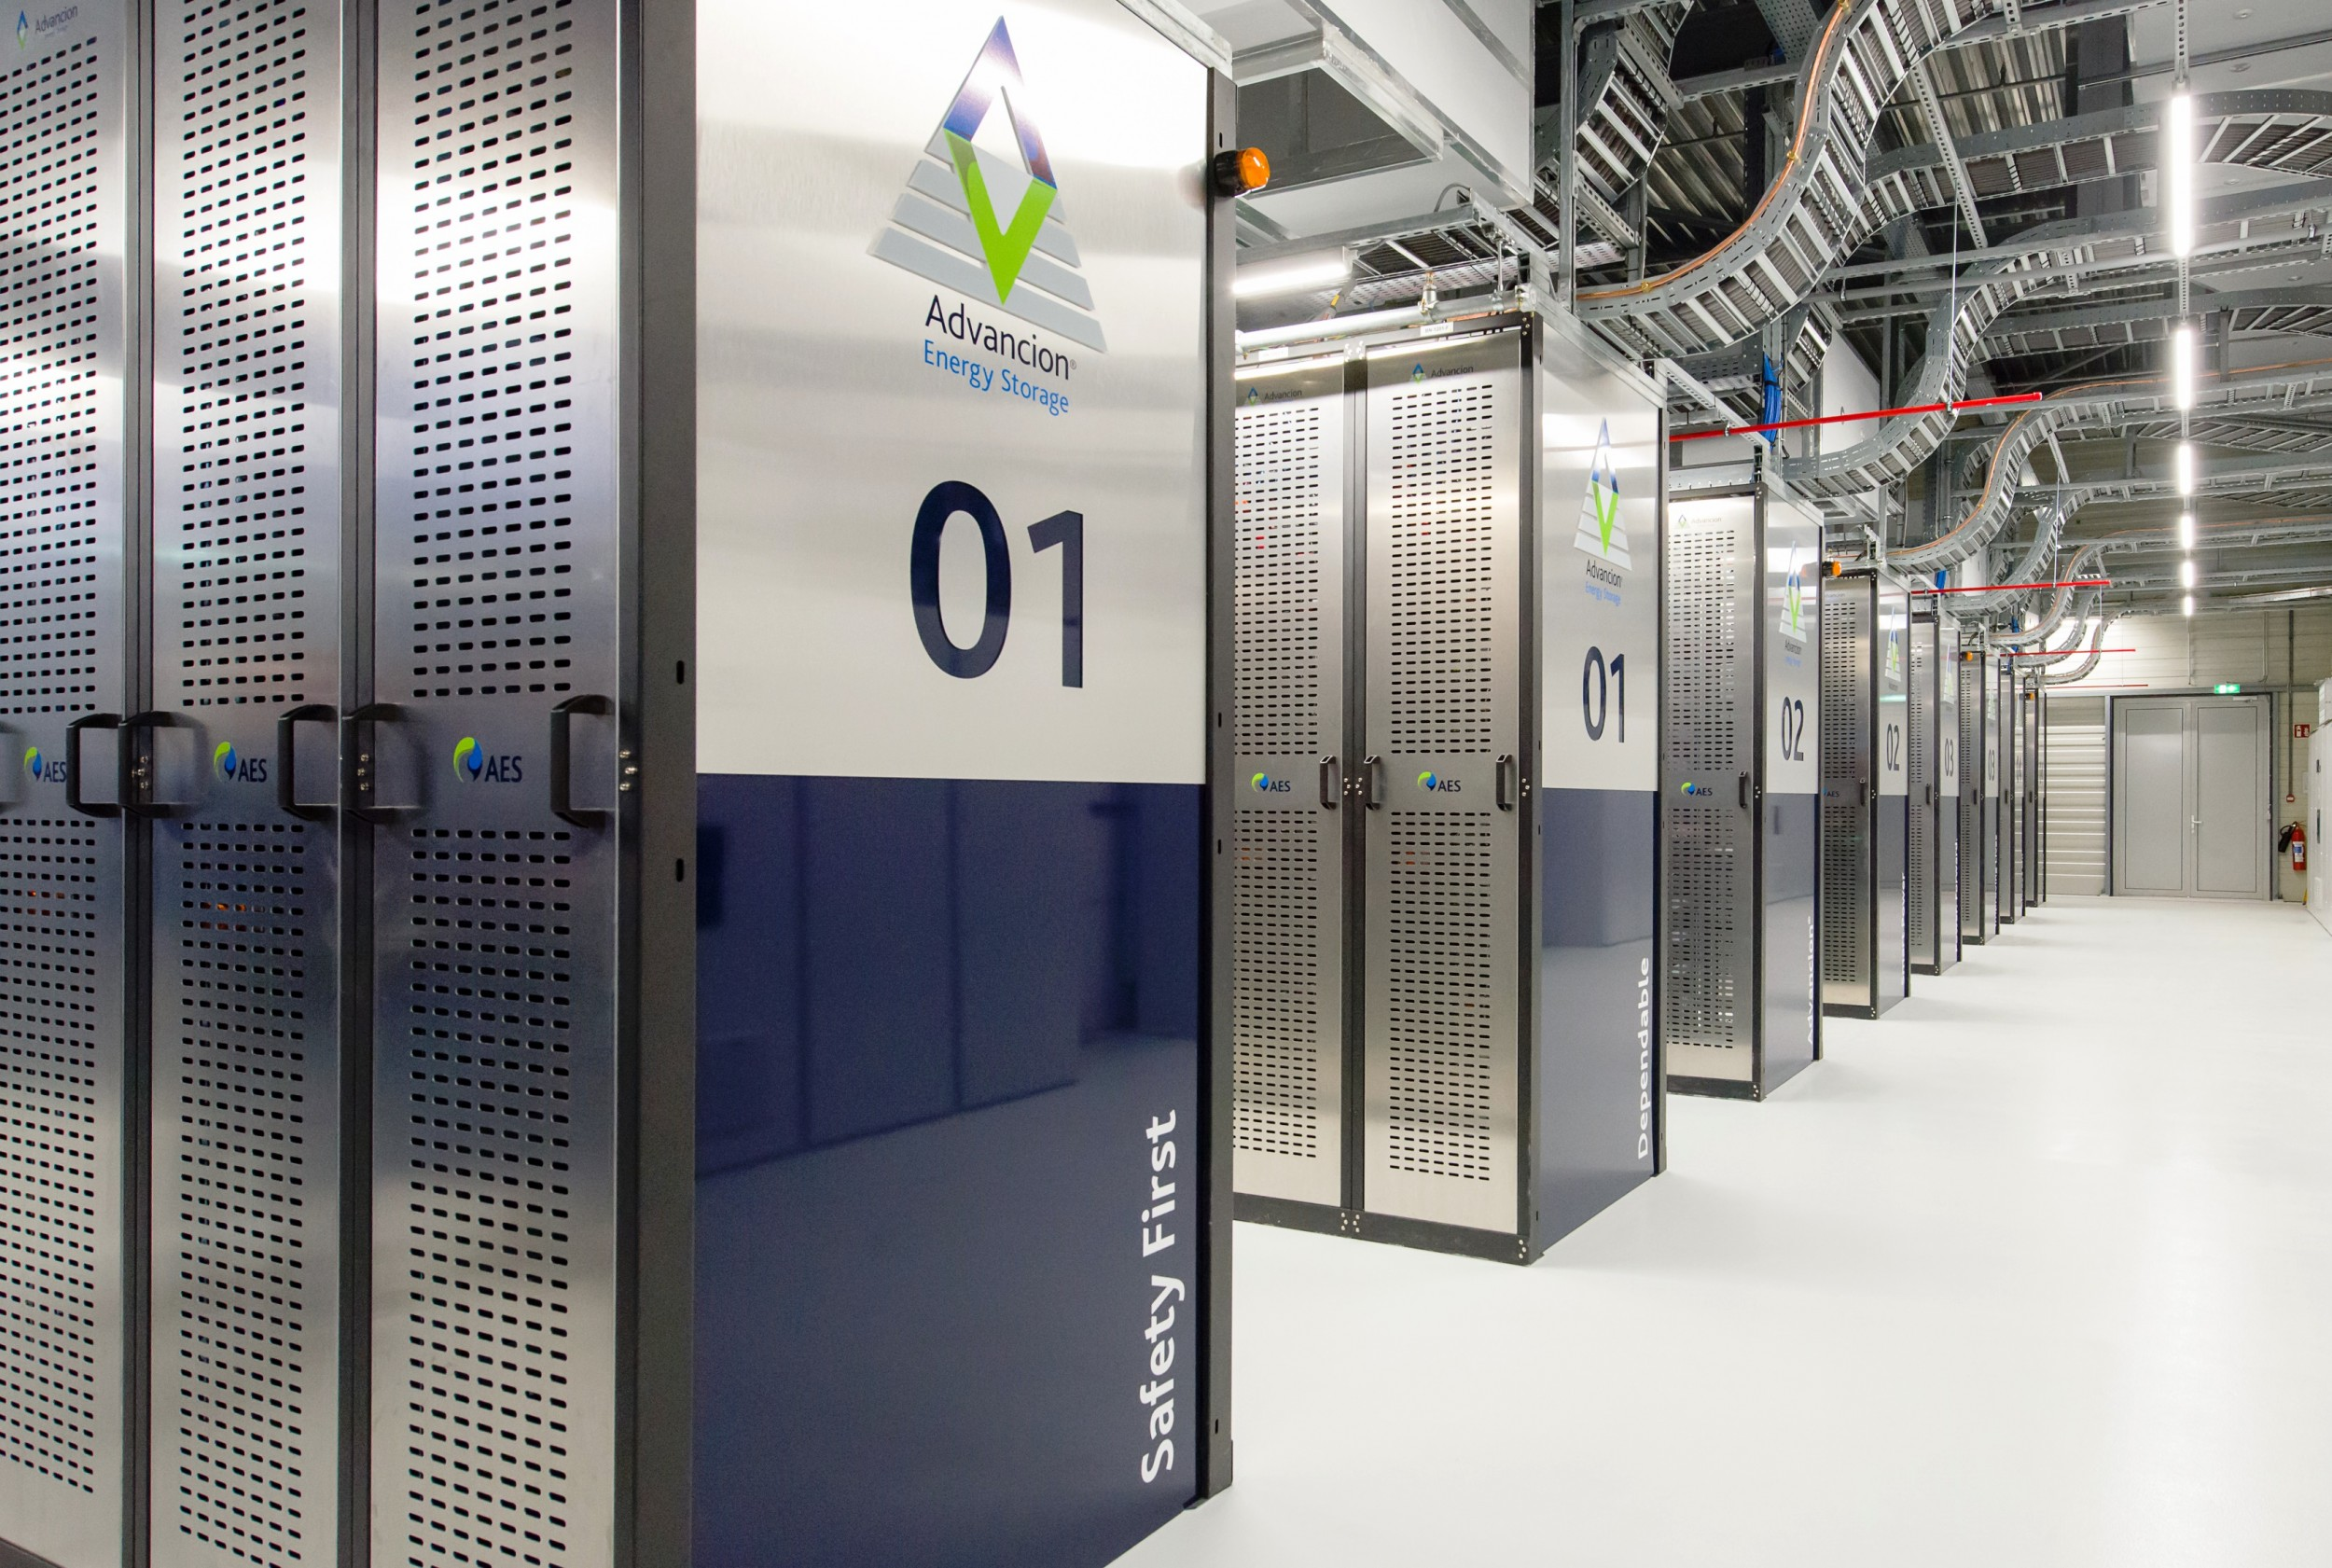 UK Power Reserve Partners with Global Energy Storage Provider Fluence to Deliver 60MW Battery Storage for UK Grid